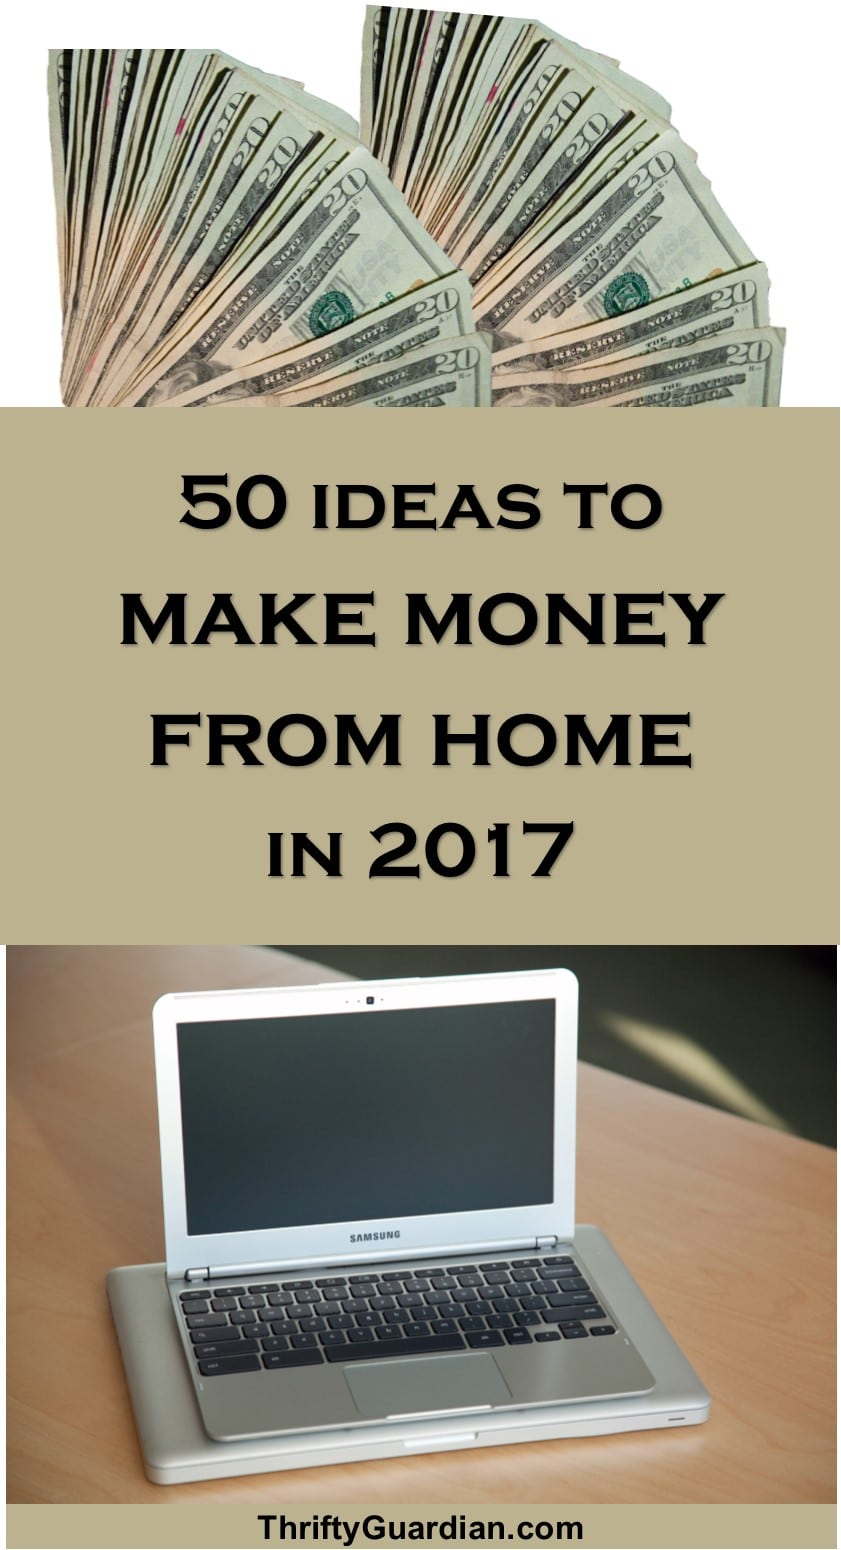 Make money from home, ideas to make money online, passive income ideas